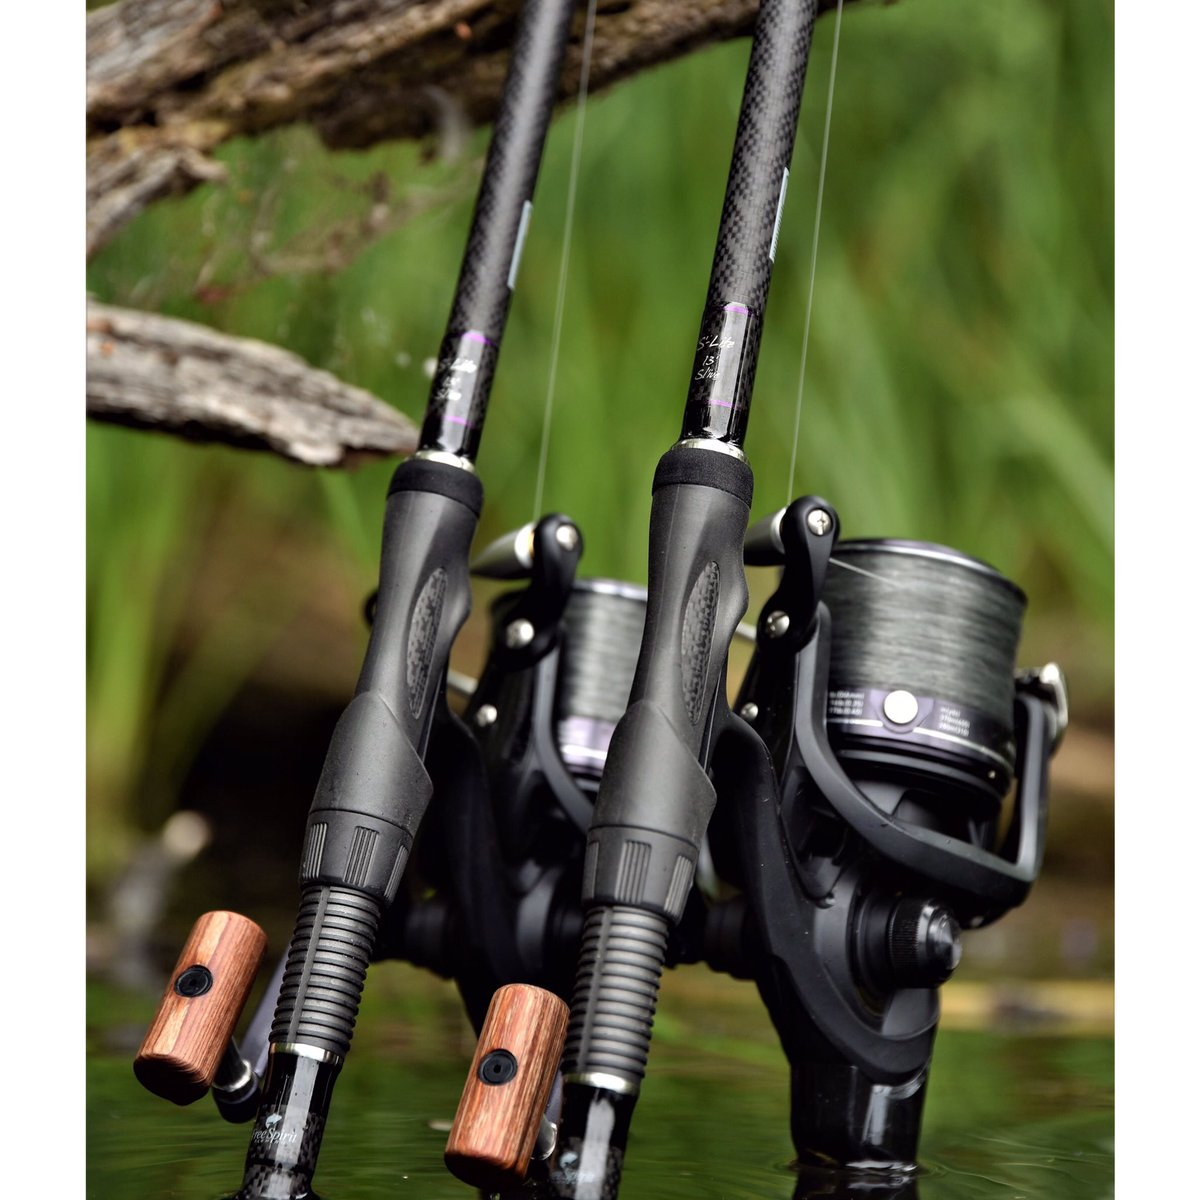 Power, precision, <b>Passion</b>... #freespiritXS #southcoastrods #carprods #carpfishing  #carp http